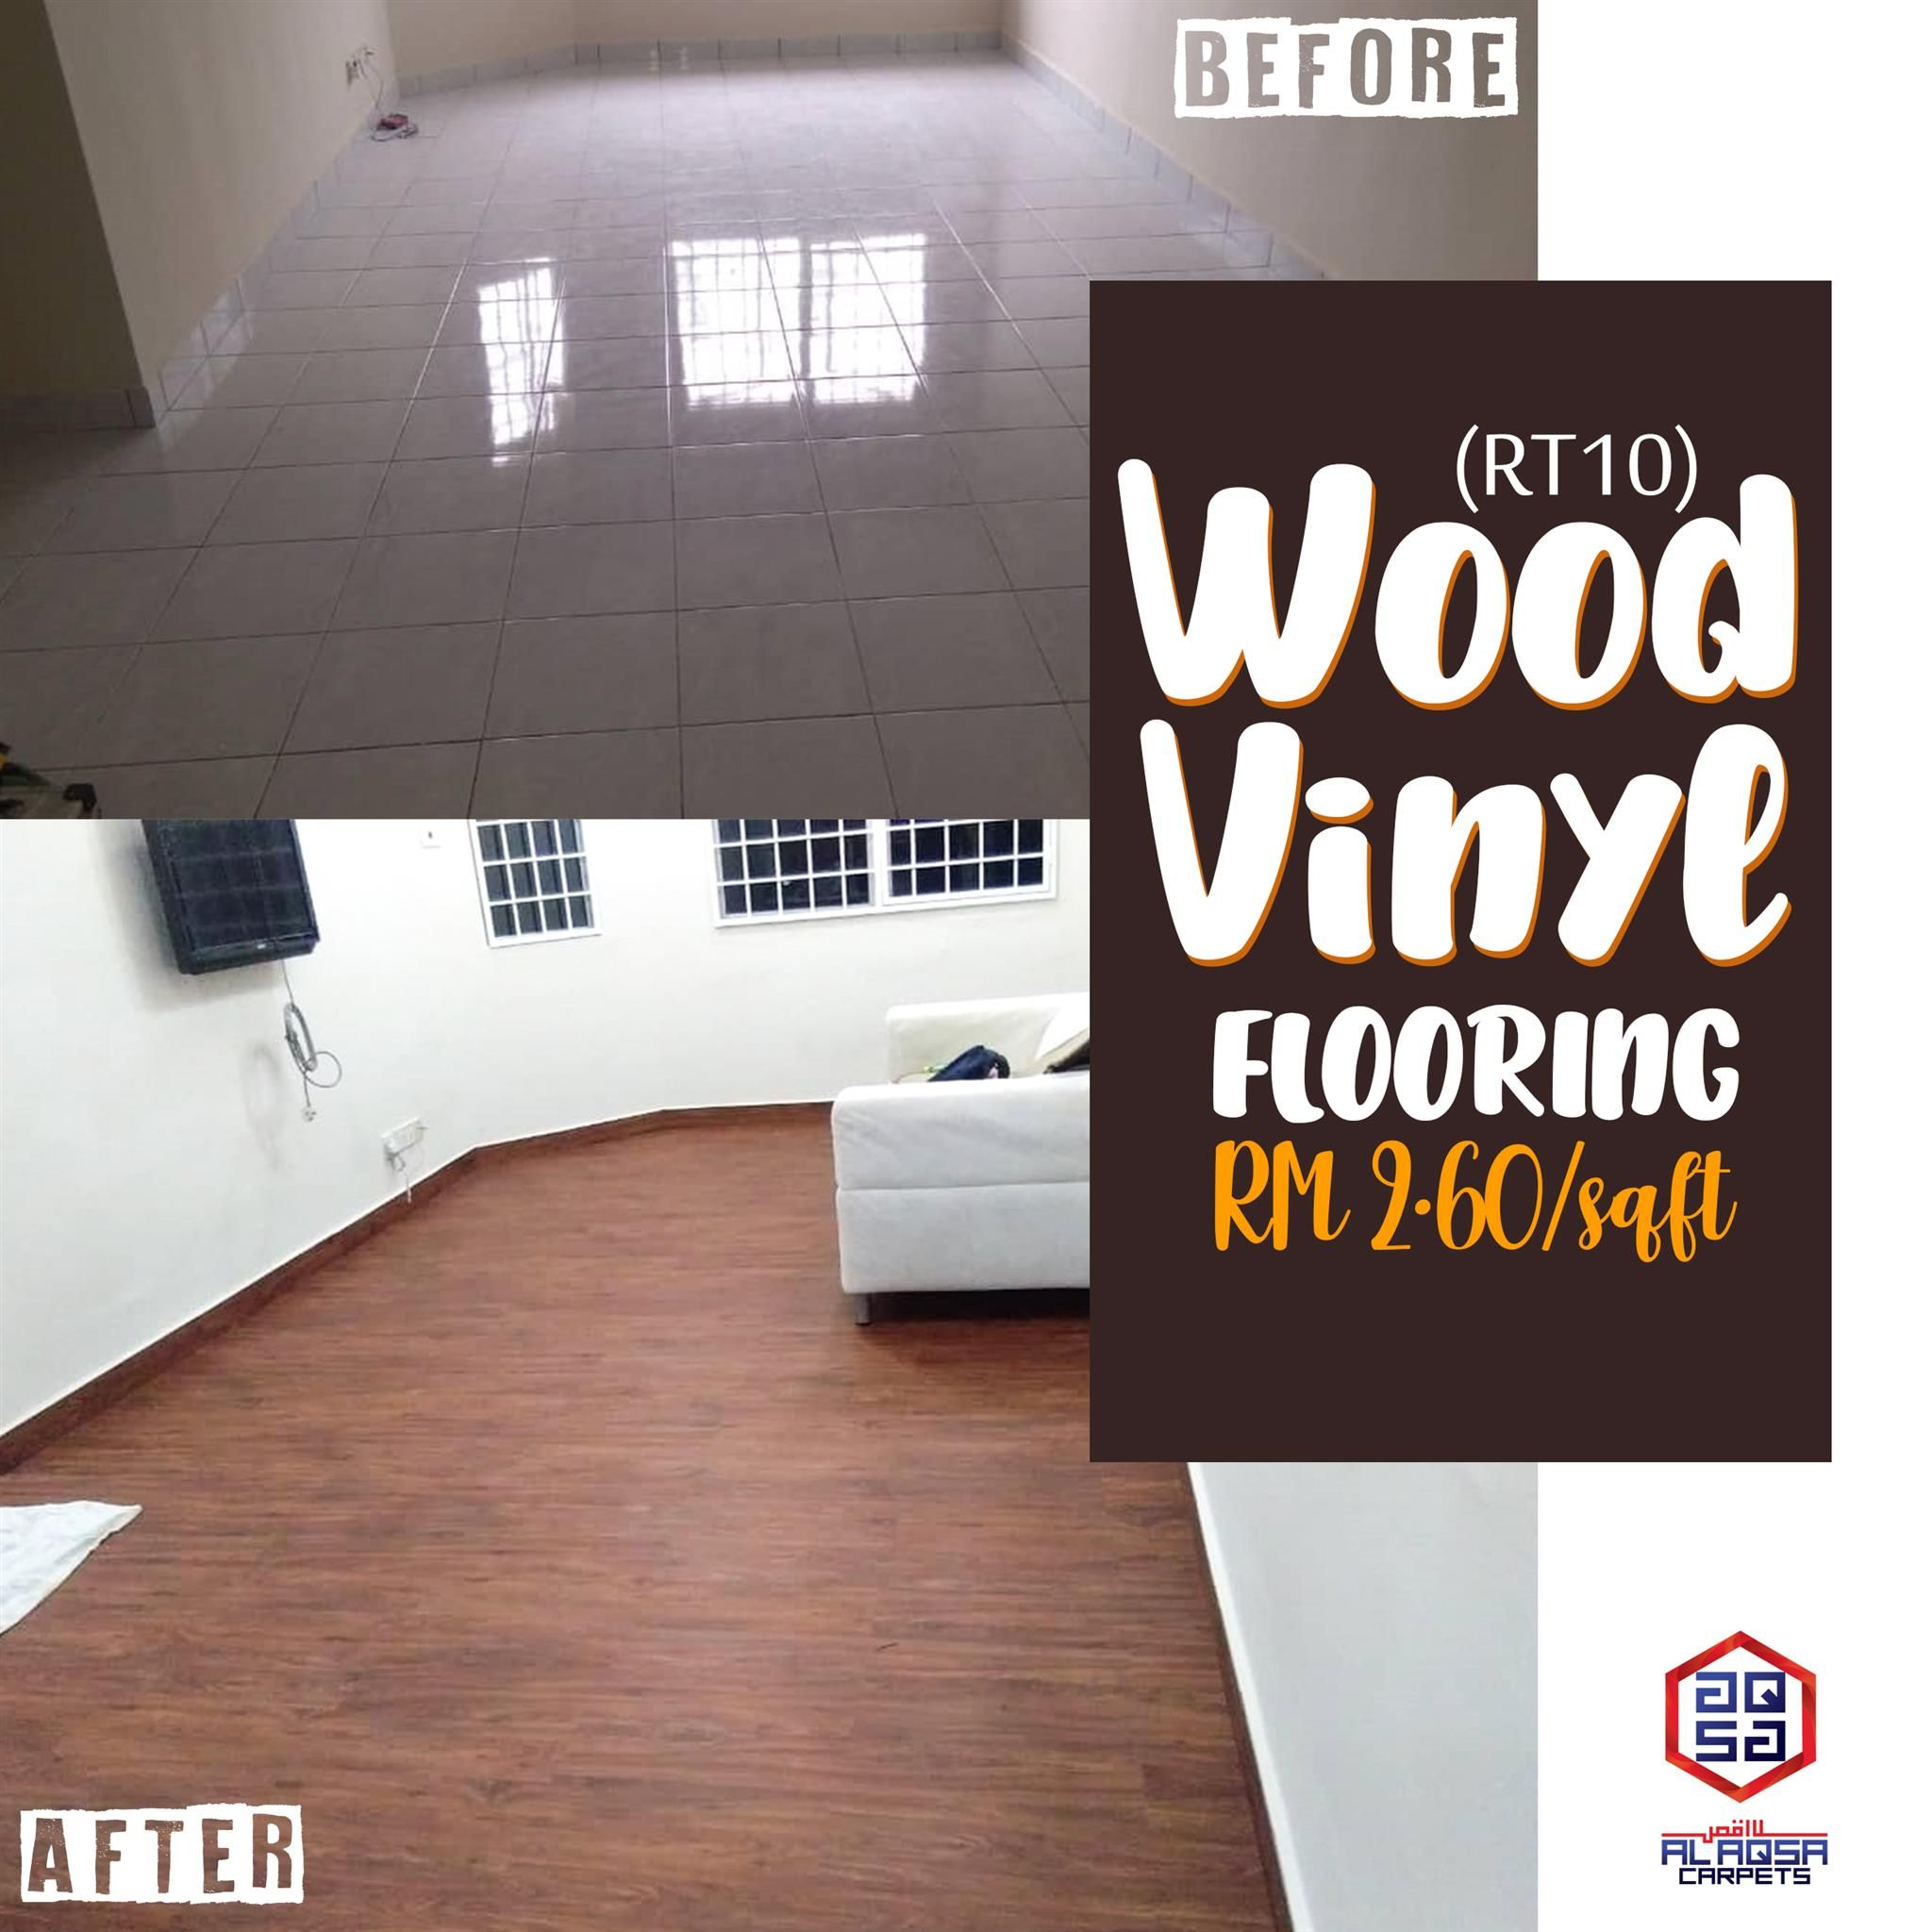 Not Sure Which Flooring Is Best For Your Needs Alaqsa Carpets Will Help You Find A Perfect Match Look At This Wo Wood Vinyl Pvc Flooring Flooring